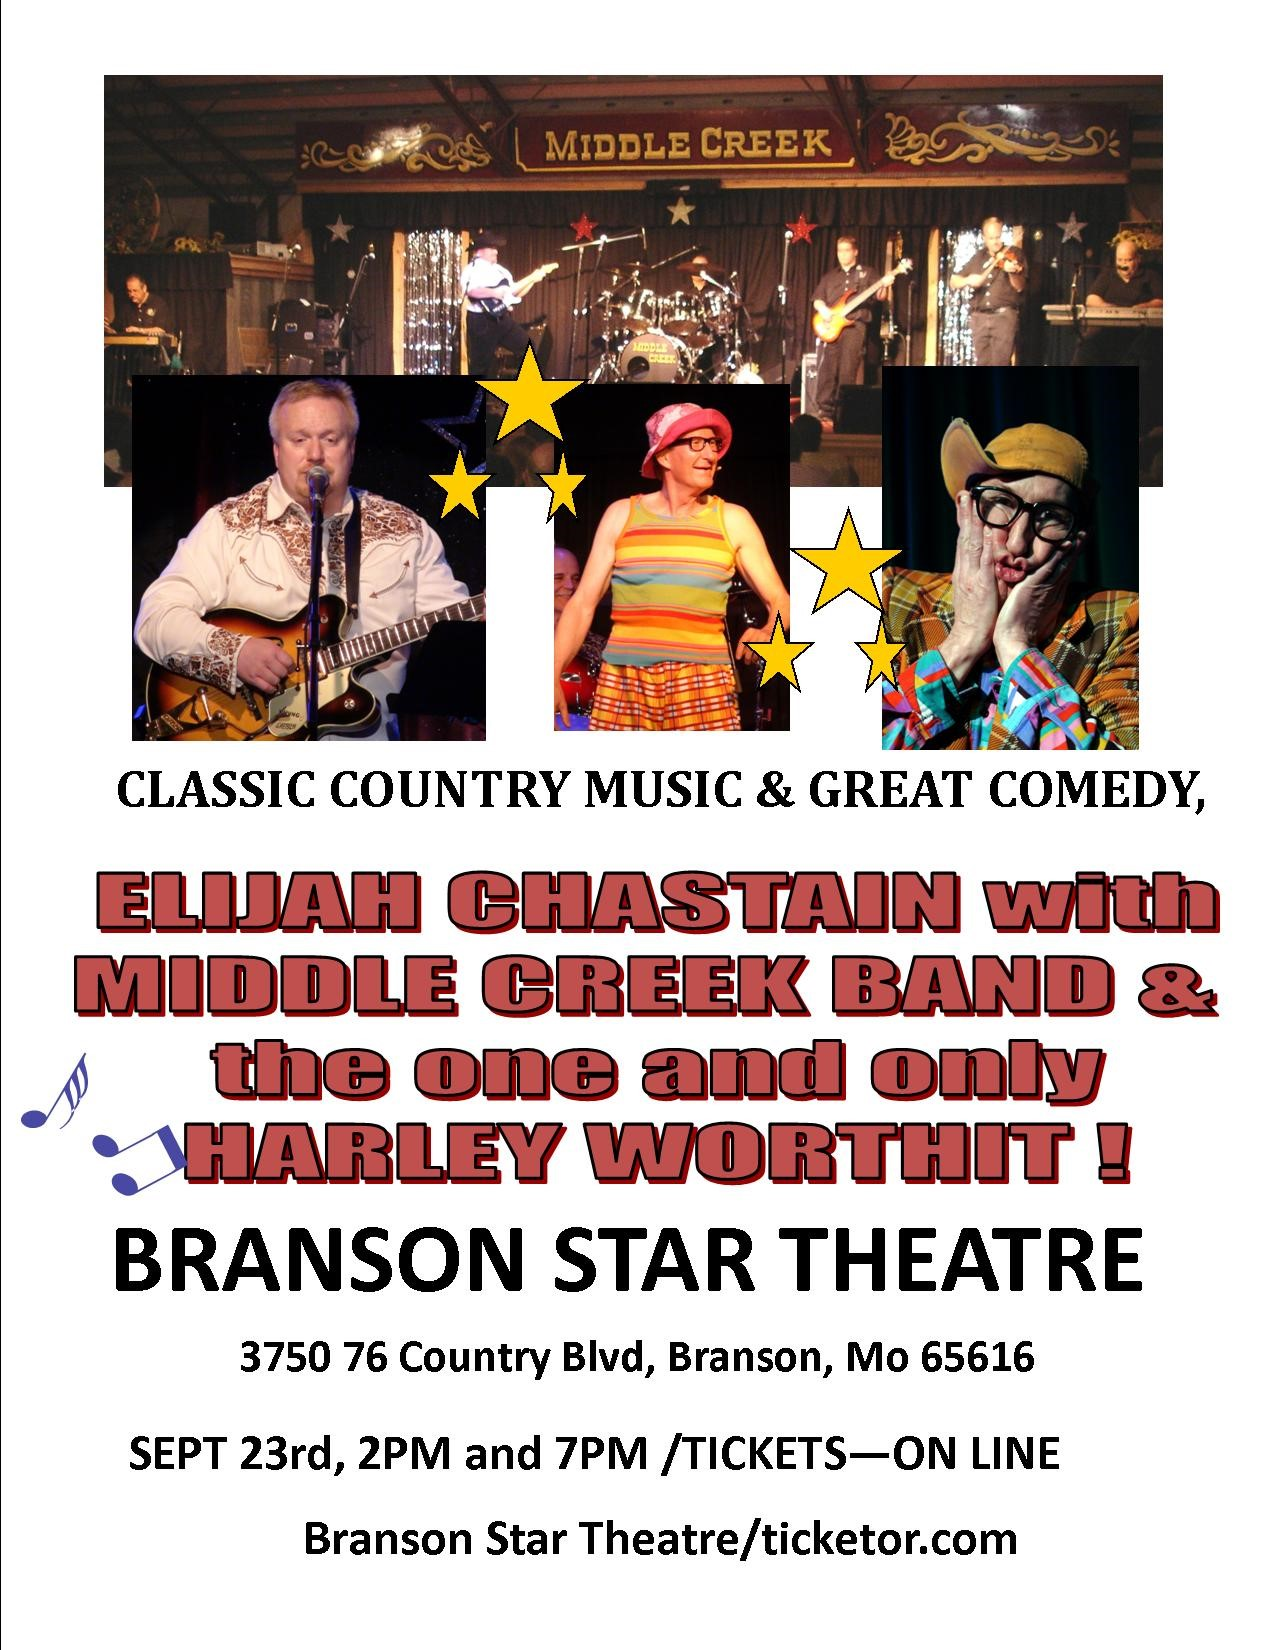 The Middle Creek Band with Harley Worthit  on Sep 25, 00:00@Branson Star Theater - Pick a seat, Buy tickets and Get information on The Branson Star Theater bransonstartheater